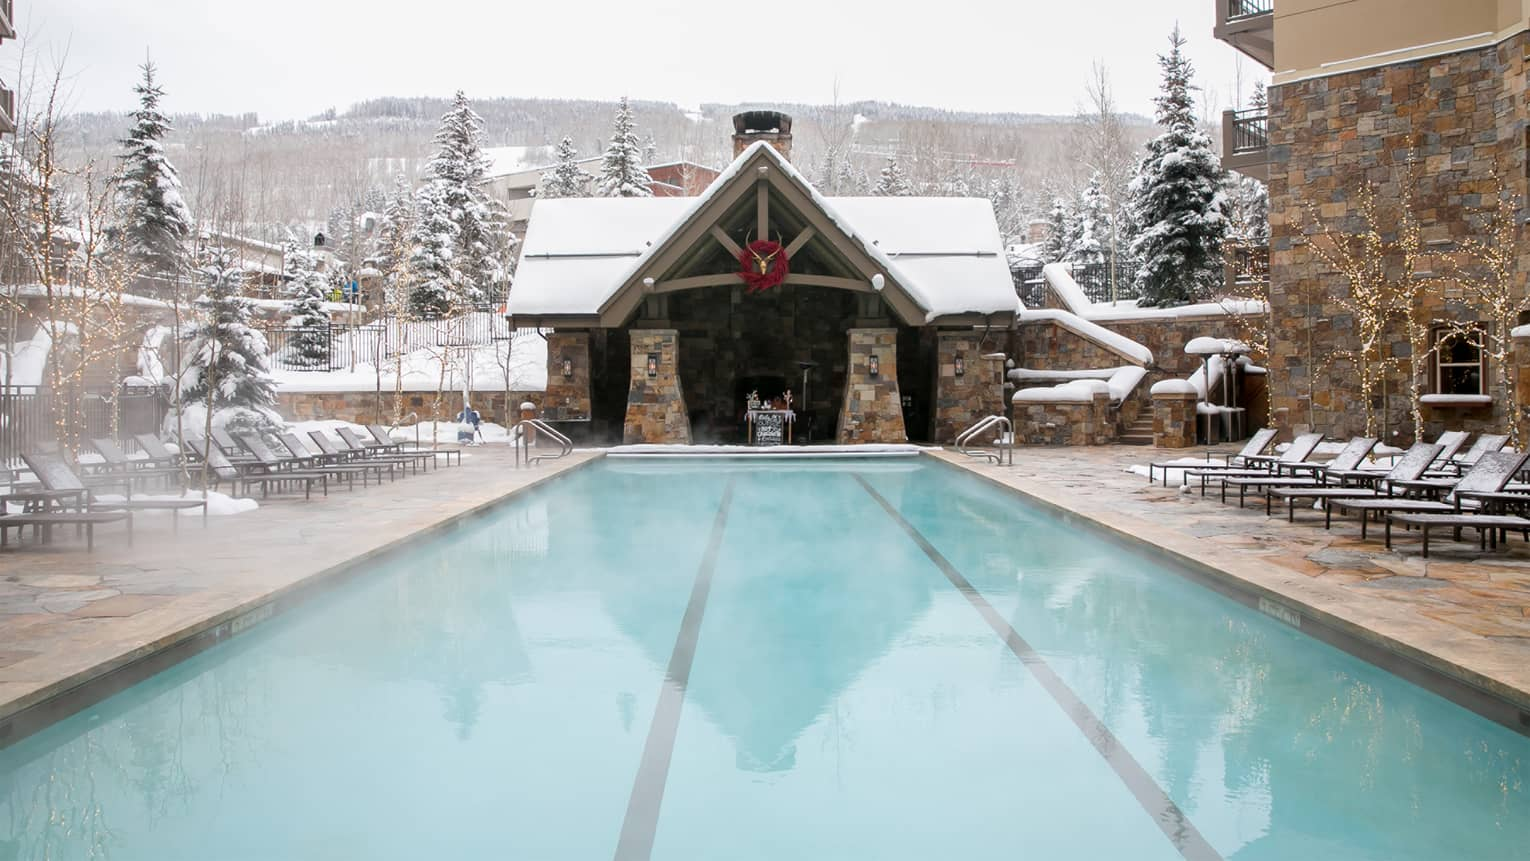 Steaming outdoor pool in winter with snow-covered lounge chairs, chalet-style cabana